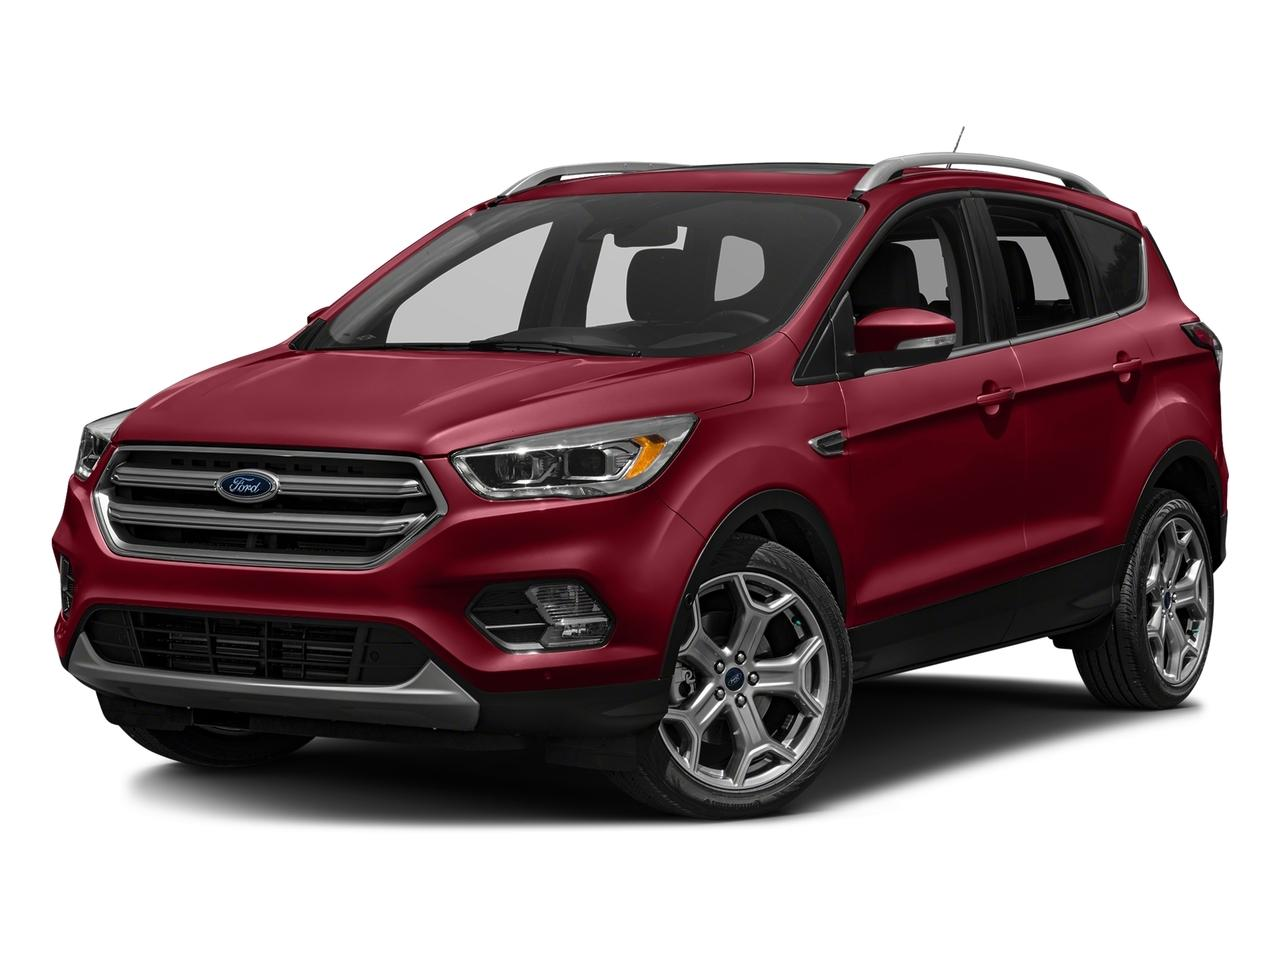 2017 Ford Escape Vehicle Photo in Akron, OH 44320